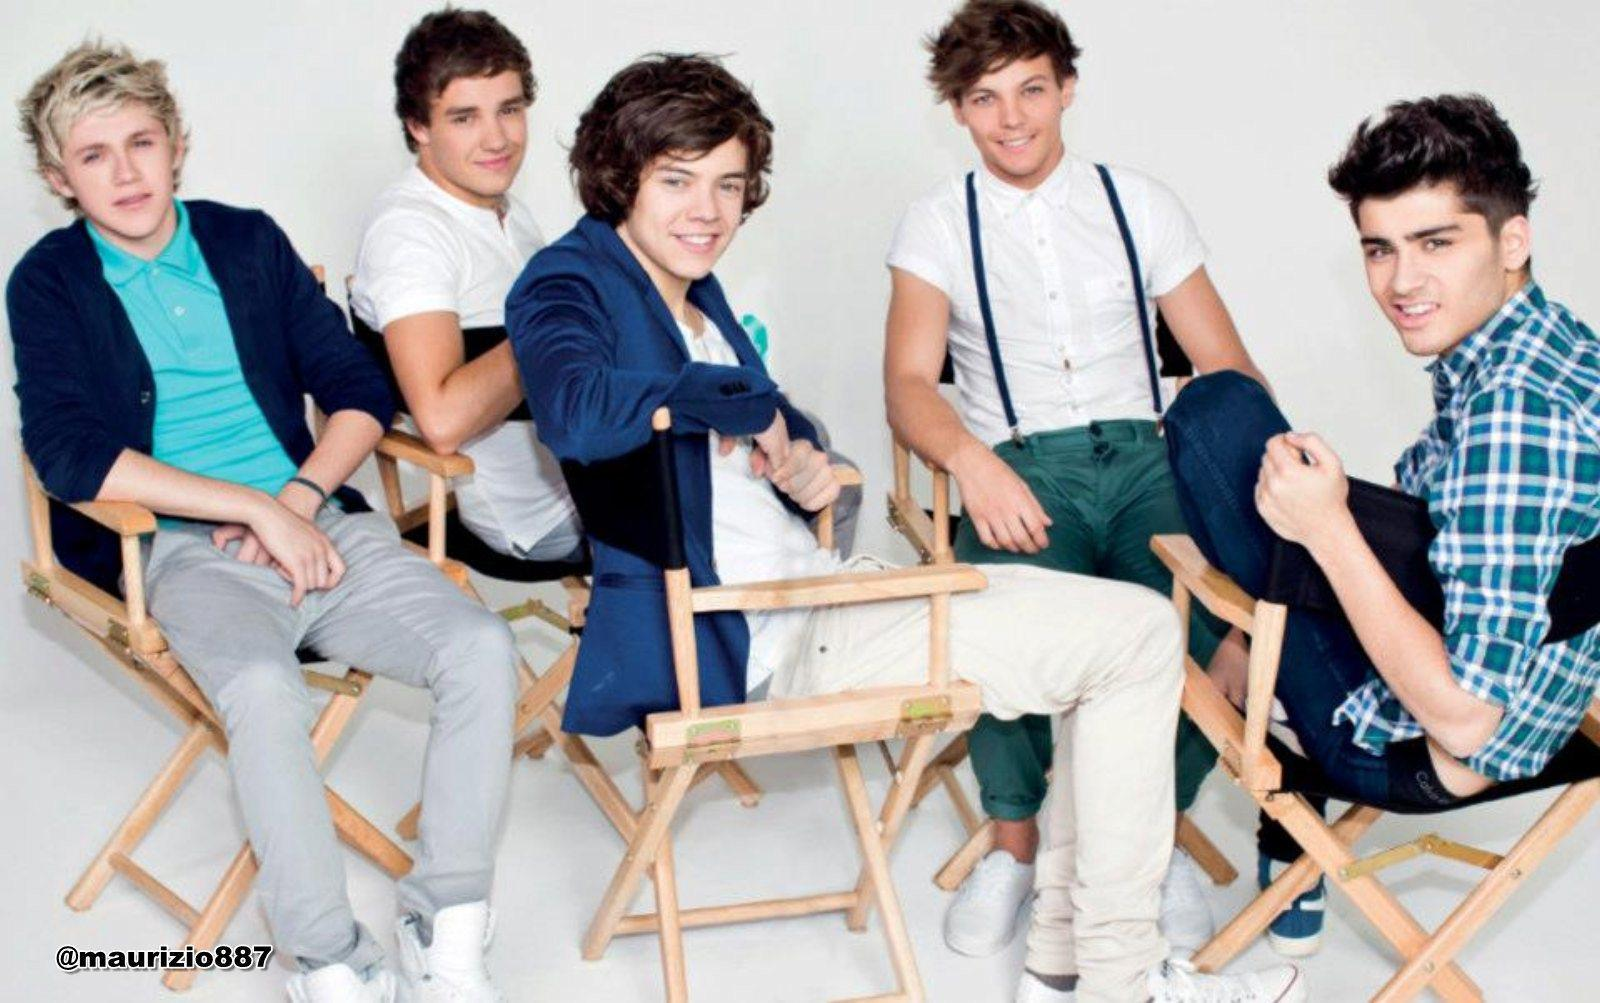 Which 1d member does 'Eddarende' mean?